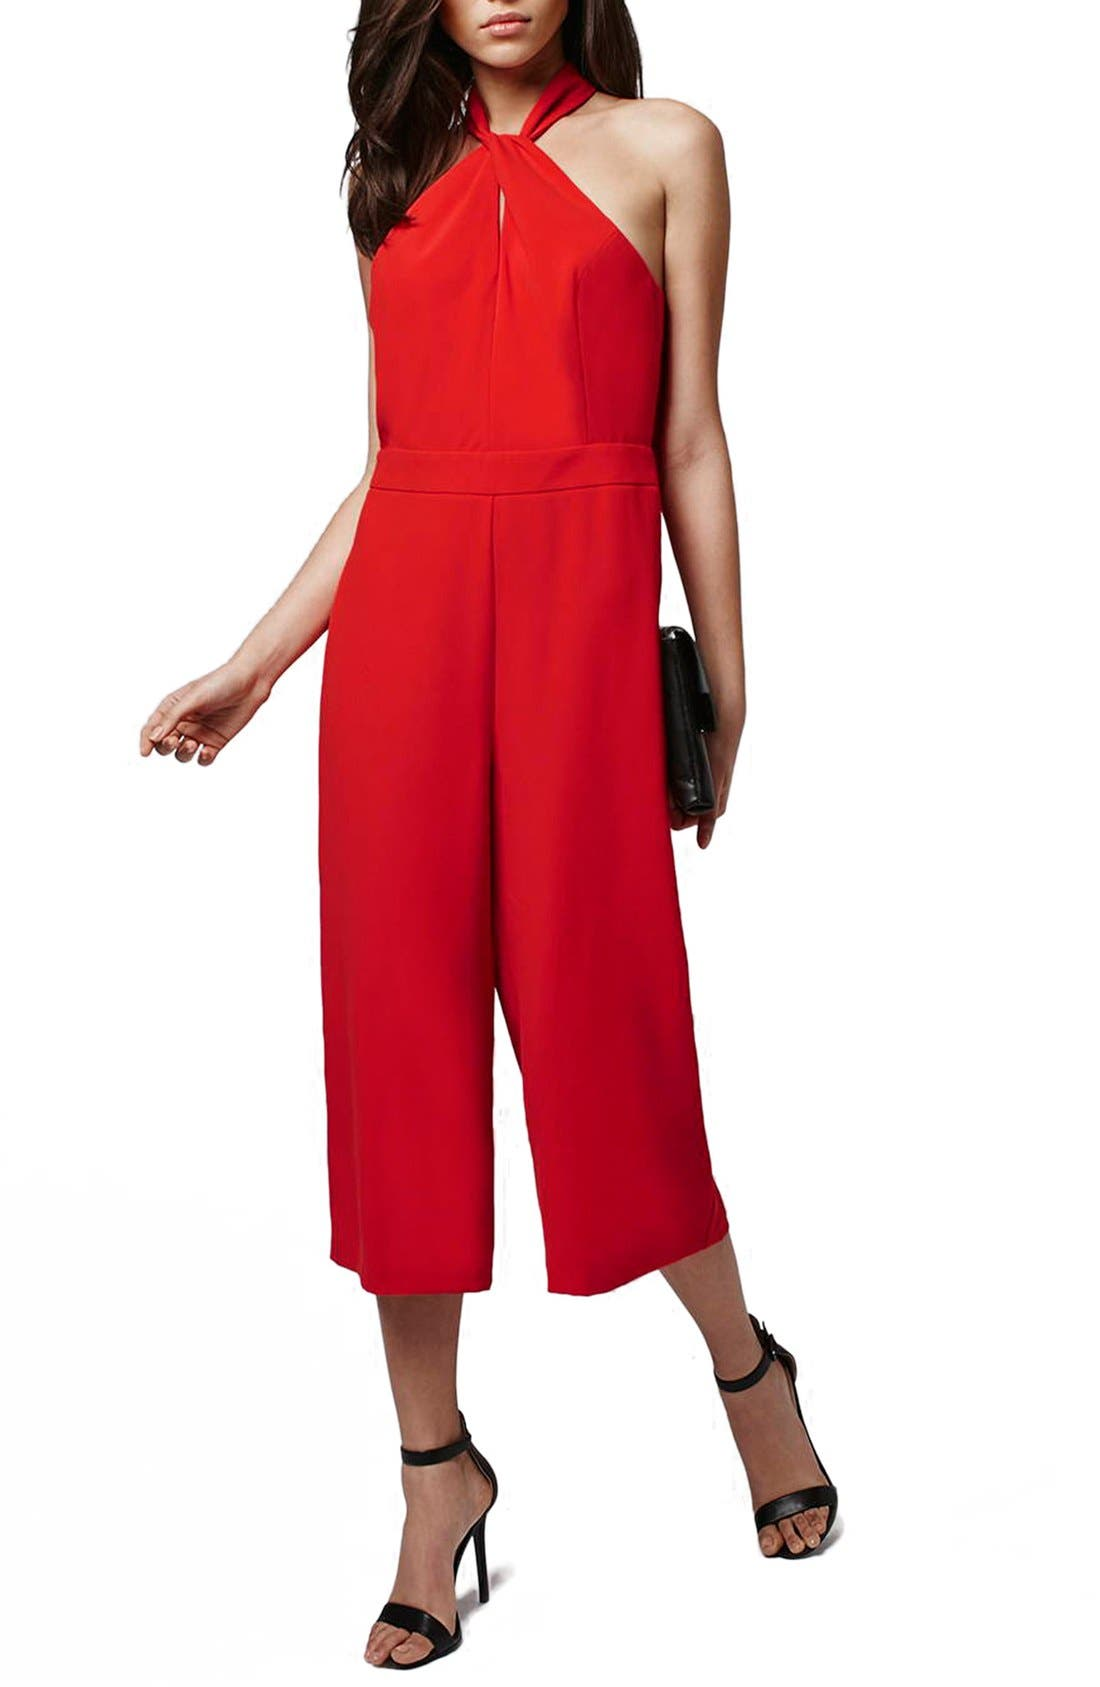 Alternate Image 1 Selected - Topshop Halter Style Culotte Jumpsuit